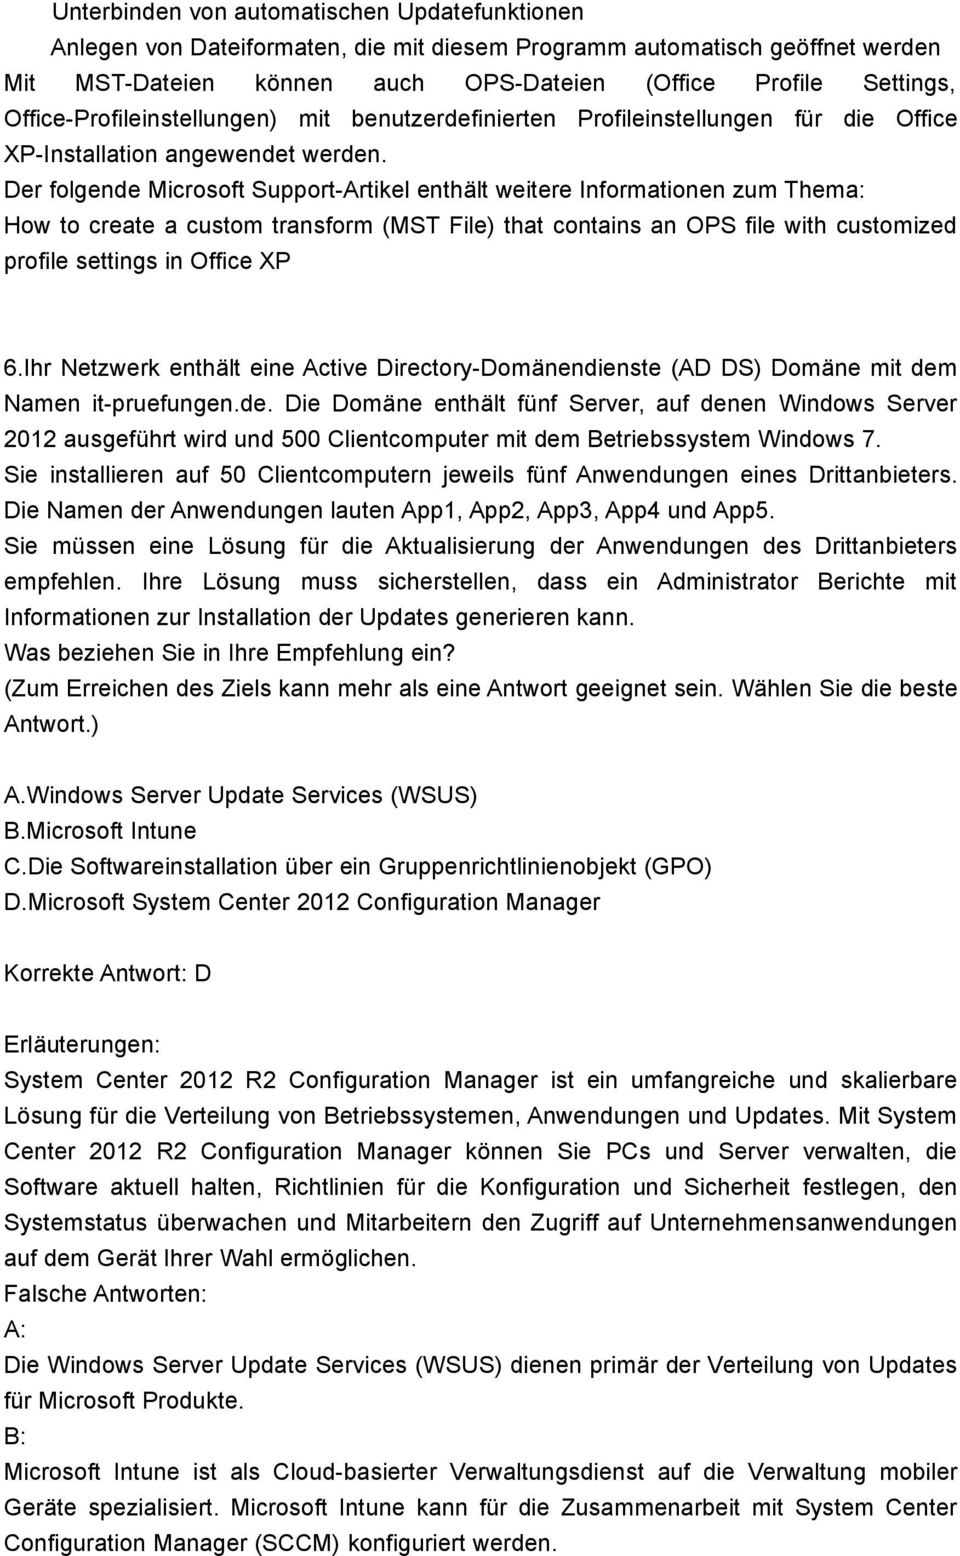 Der folgende Microsoft Support-Artikel enthält weitere Informationen zum Thema: How to create a custom transform (MST File) that contains an OPS file with customized profile settings in Office XP 6.